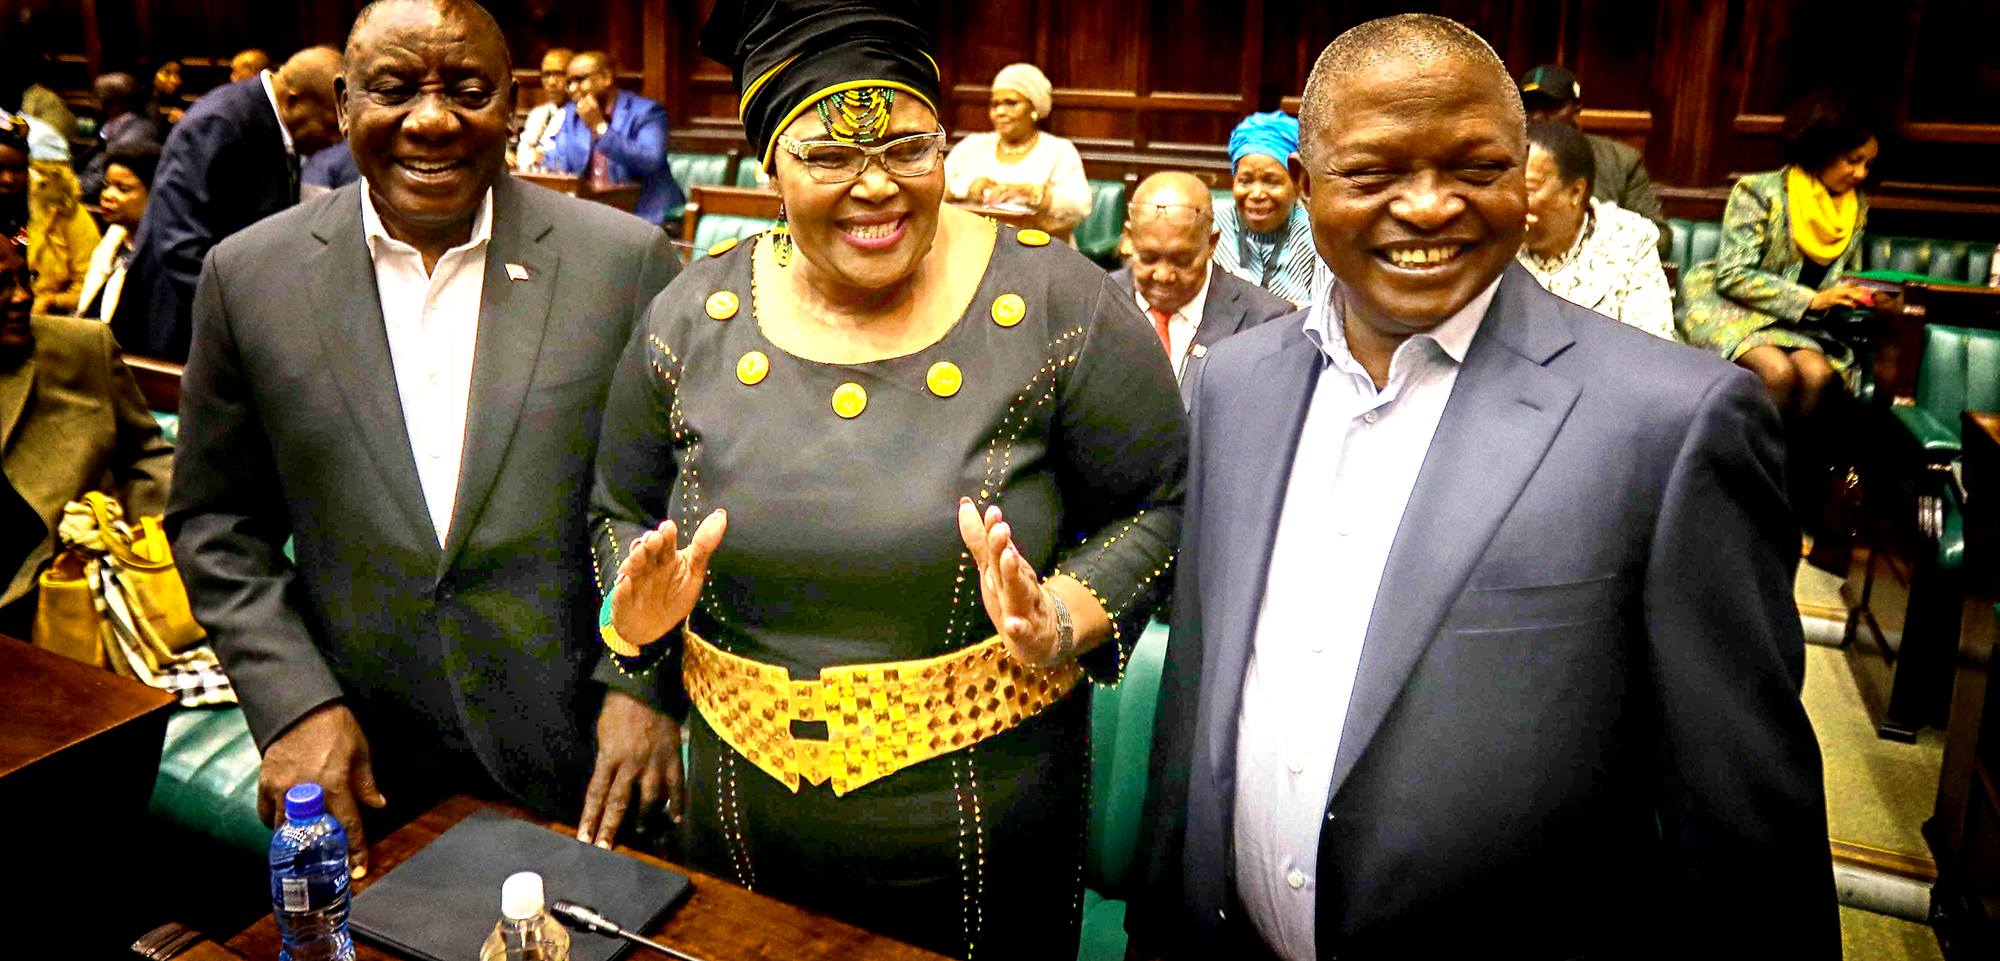 The day Mabuza shocked the nation, releasing a torrent of questions into the political wilderness with preciou